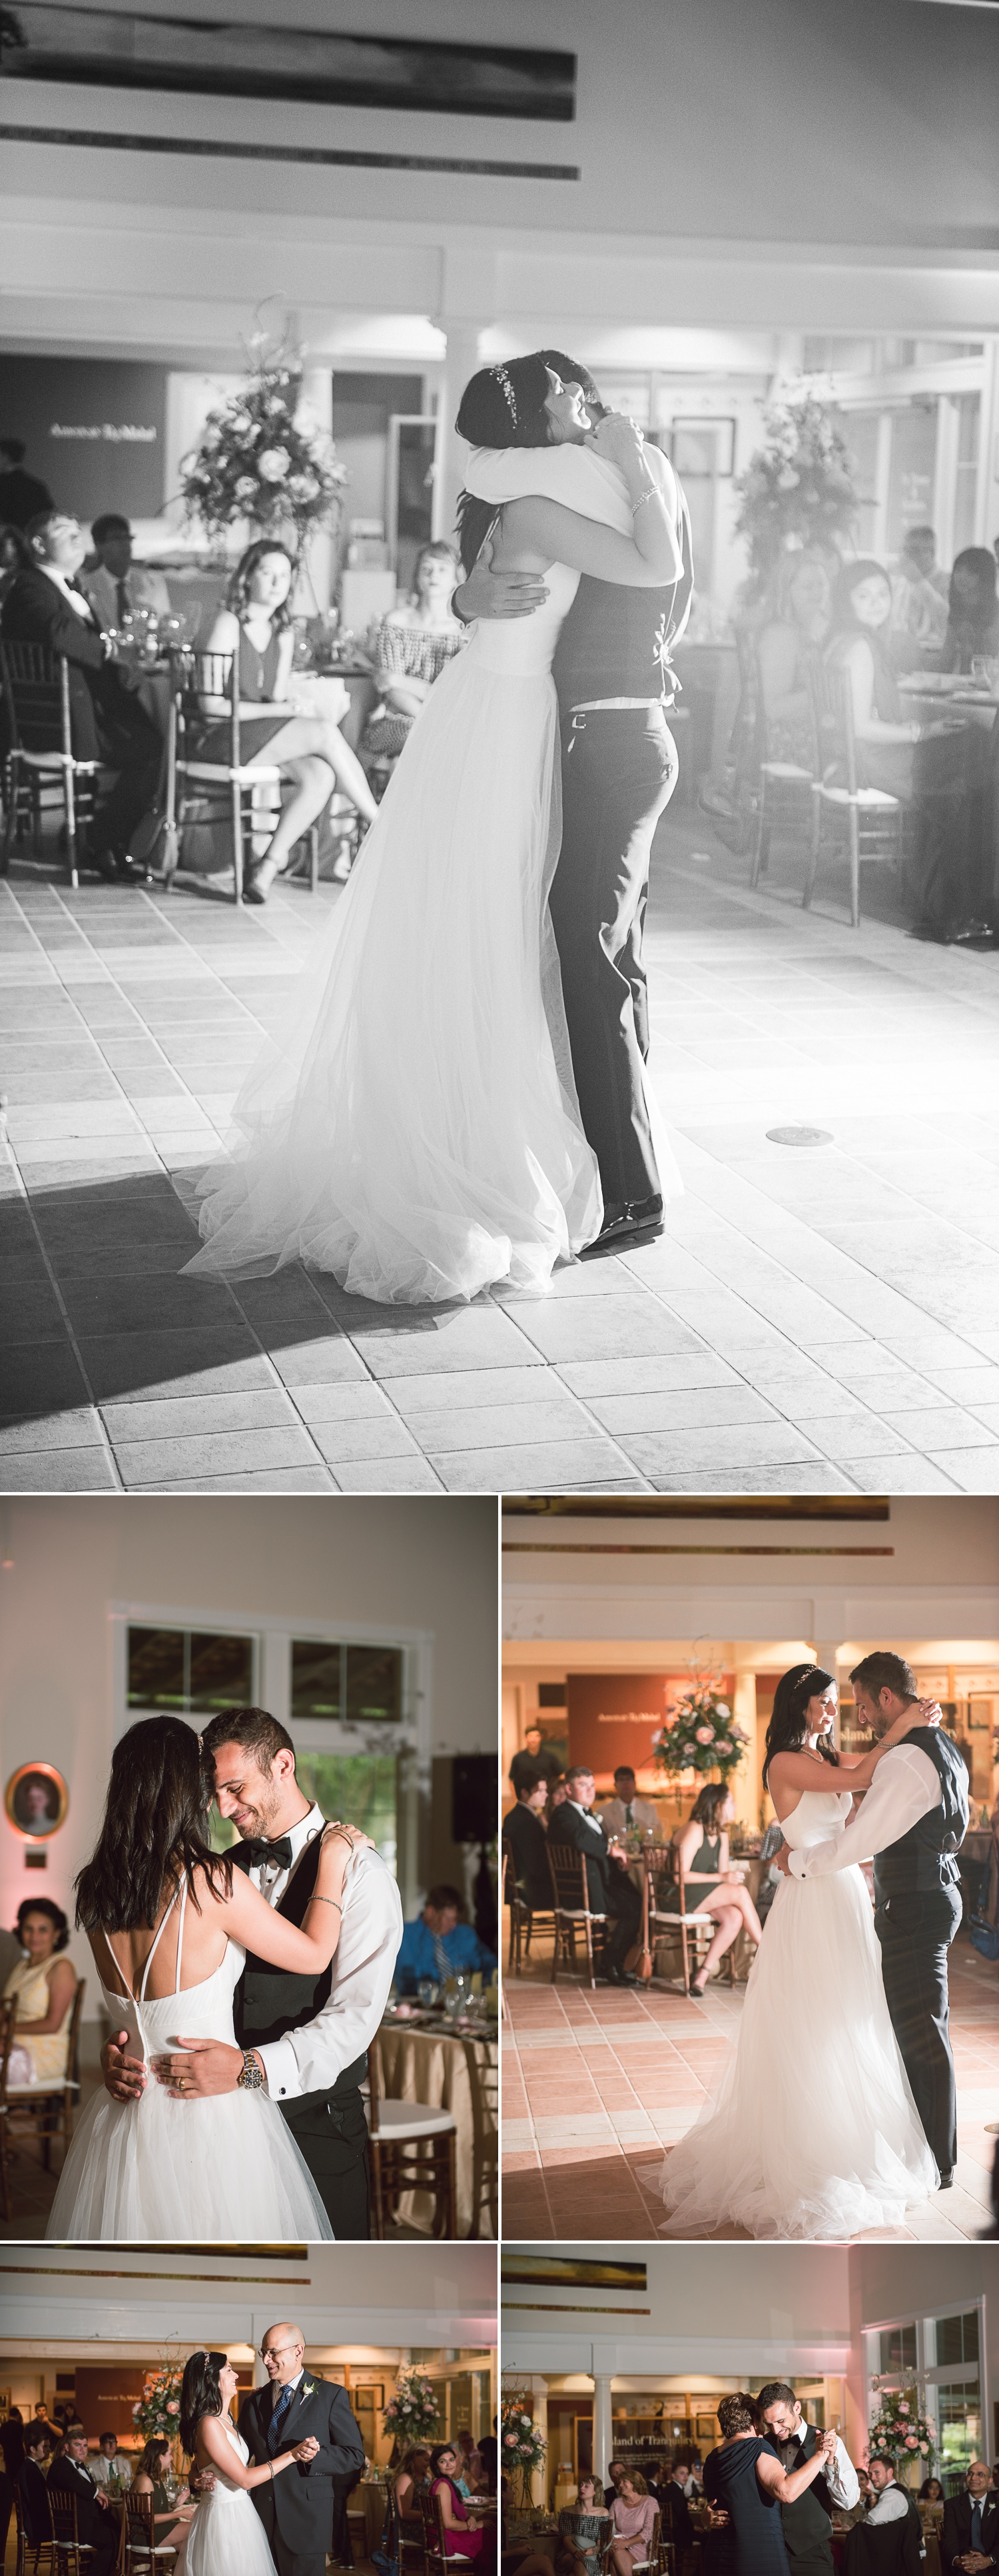 Jade + Brett Blog - Reception 1.jpg